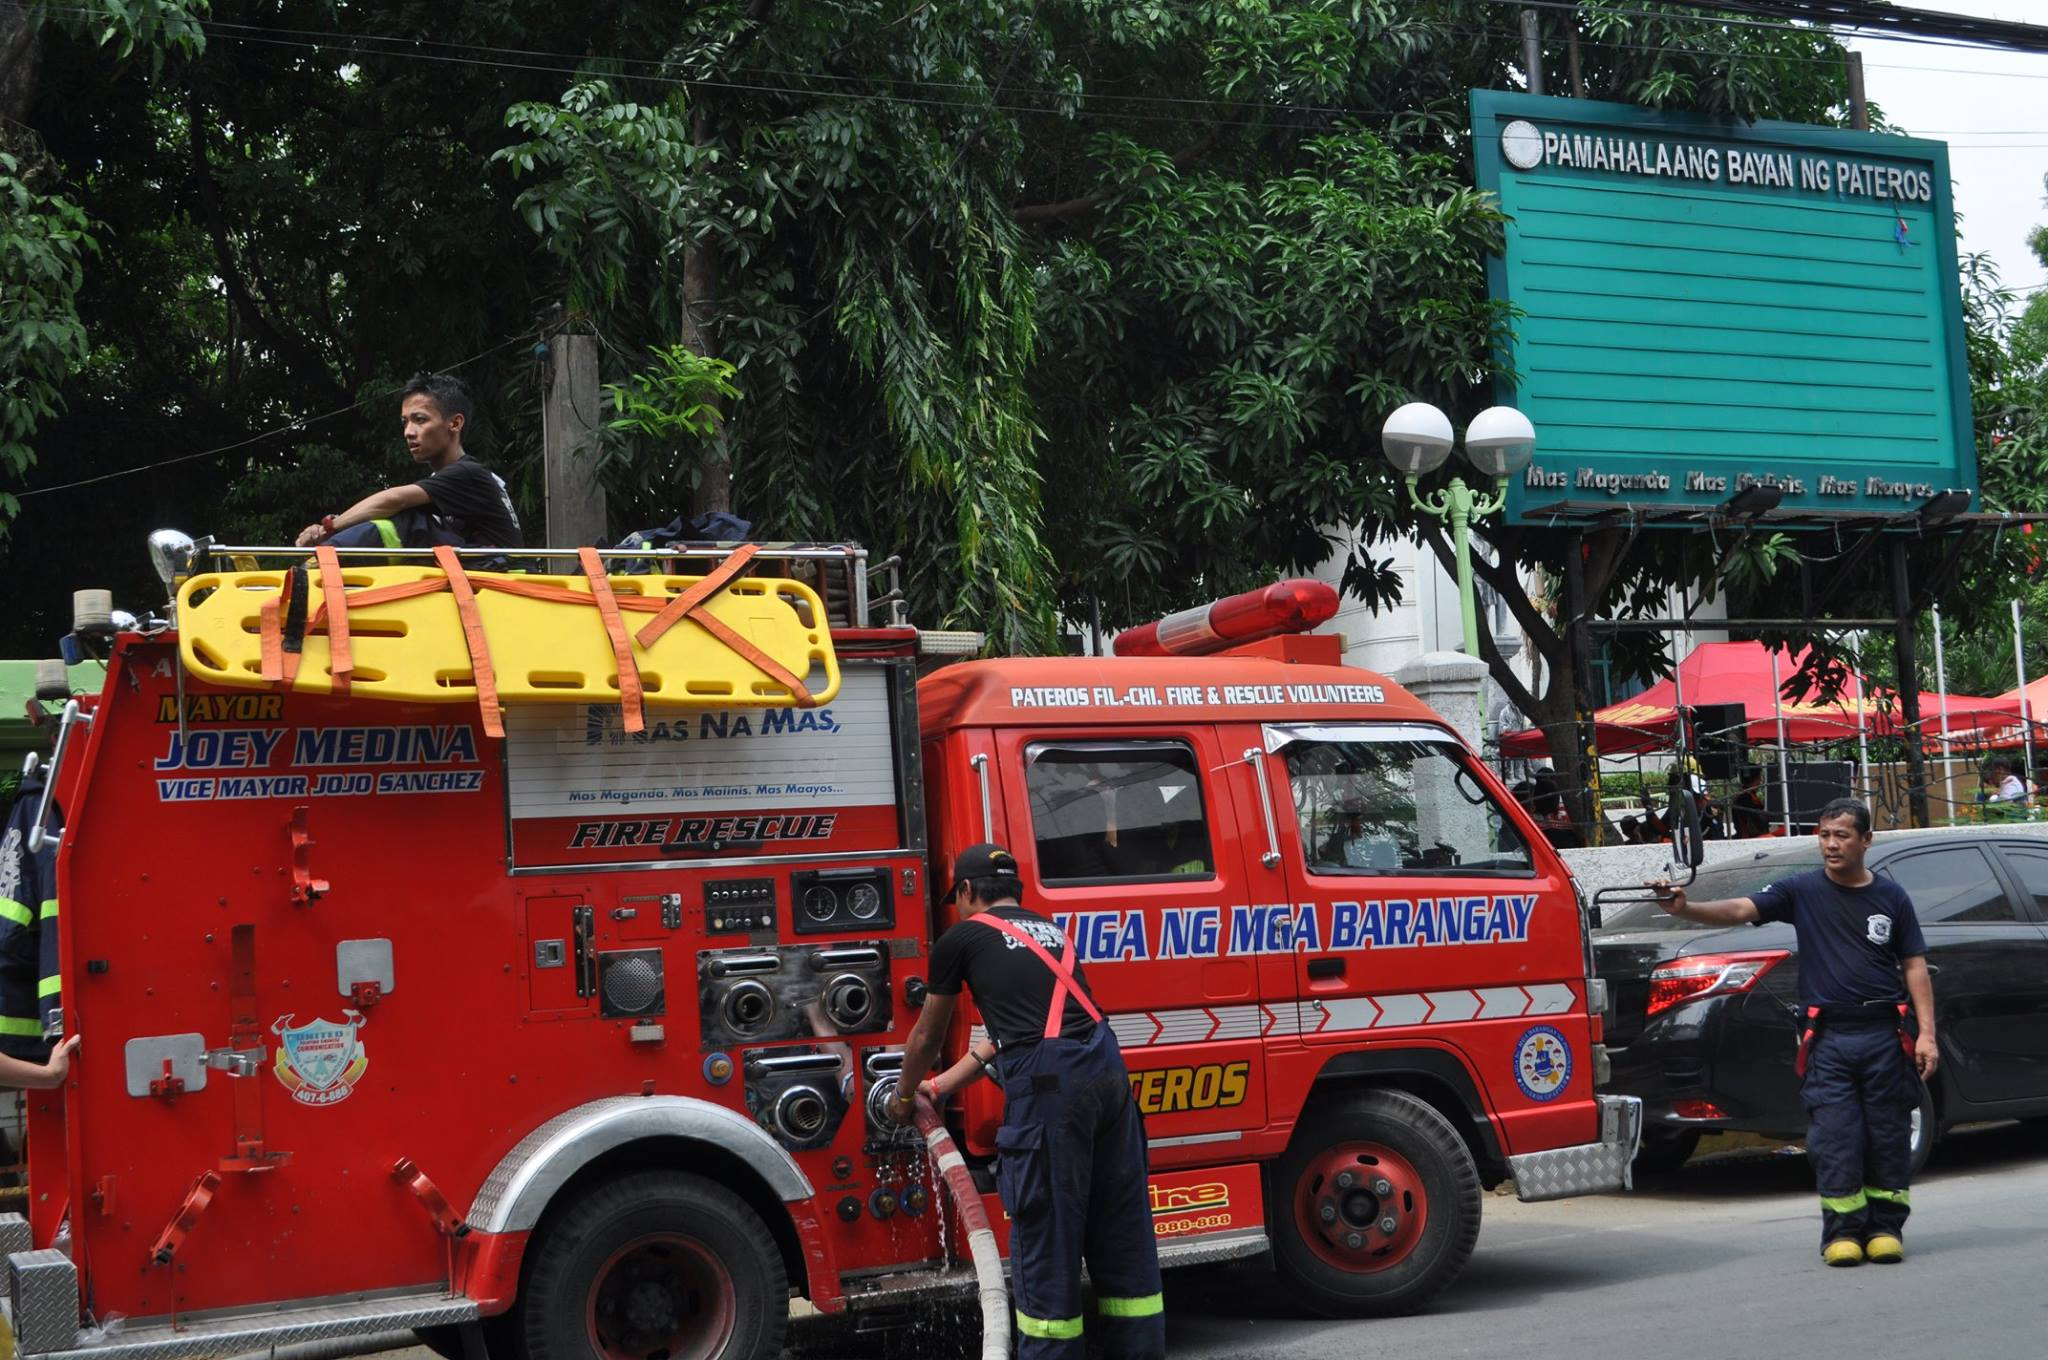 Pateros Volunteer Fire & Rescue Brigade from Philippines - 10th Year Anniversary | Emergency Live 9